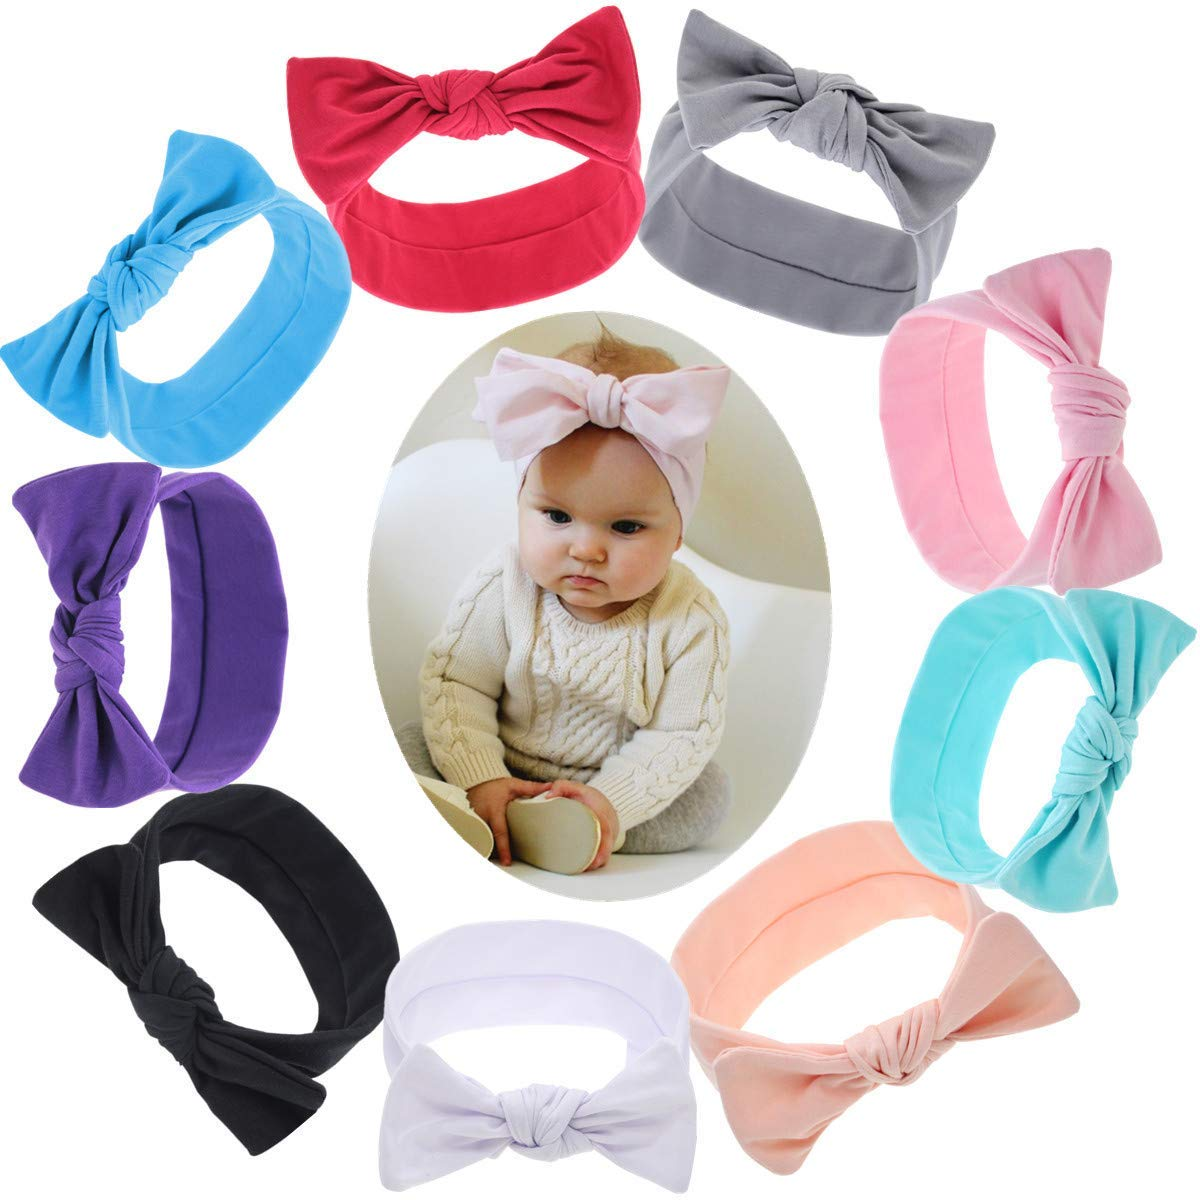 5f3050524 Get Quotations · Zhiheng 9PCS Baby Headbands Turban Knotted Girls Hairbands  for Newborn Toddler and Childrens